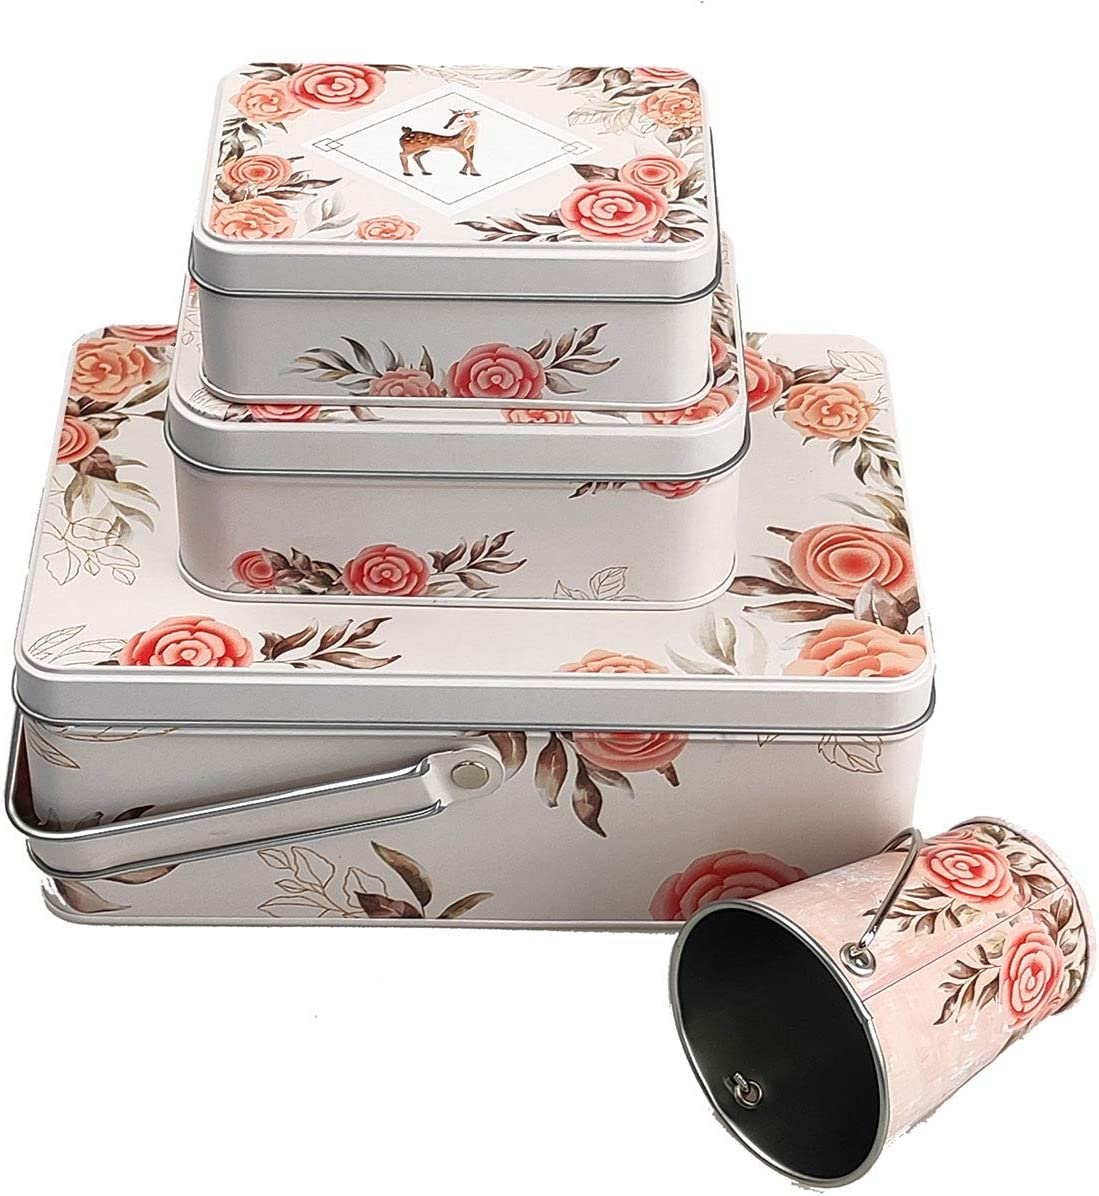 Tsing Candy Tins Colorful Metal Tin with Lid 4-in-1 Empty Rectangle Metal Storage Tin Can, Metal Bucket with Handle, Travel Containers Boxes for Cookie, Biscuit, Cards and Other things (Deer)